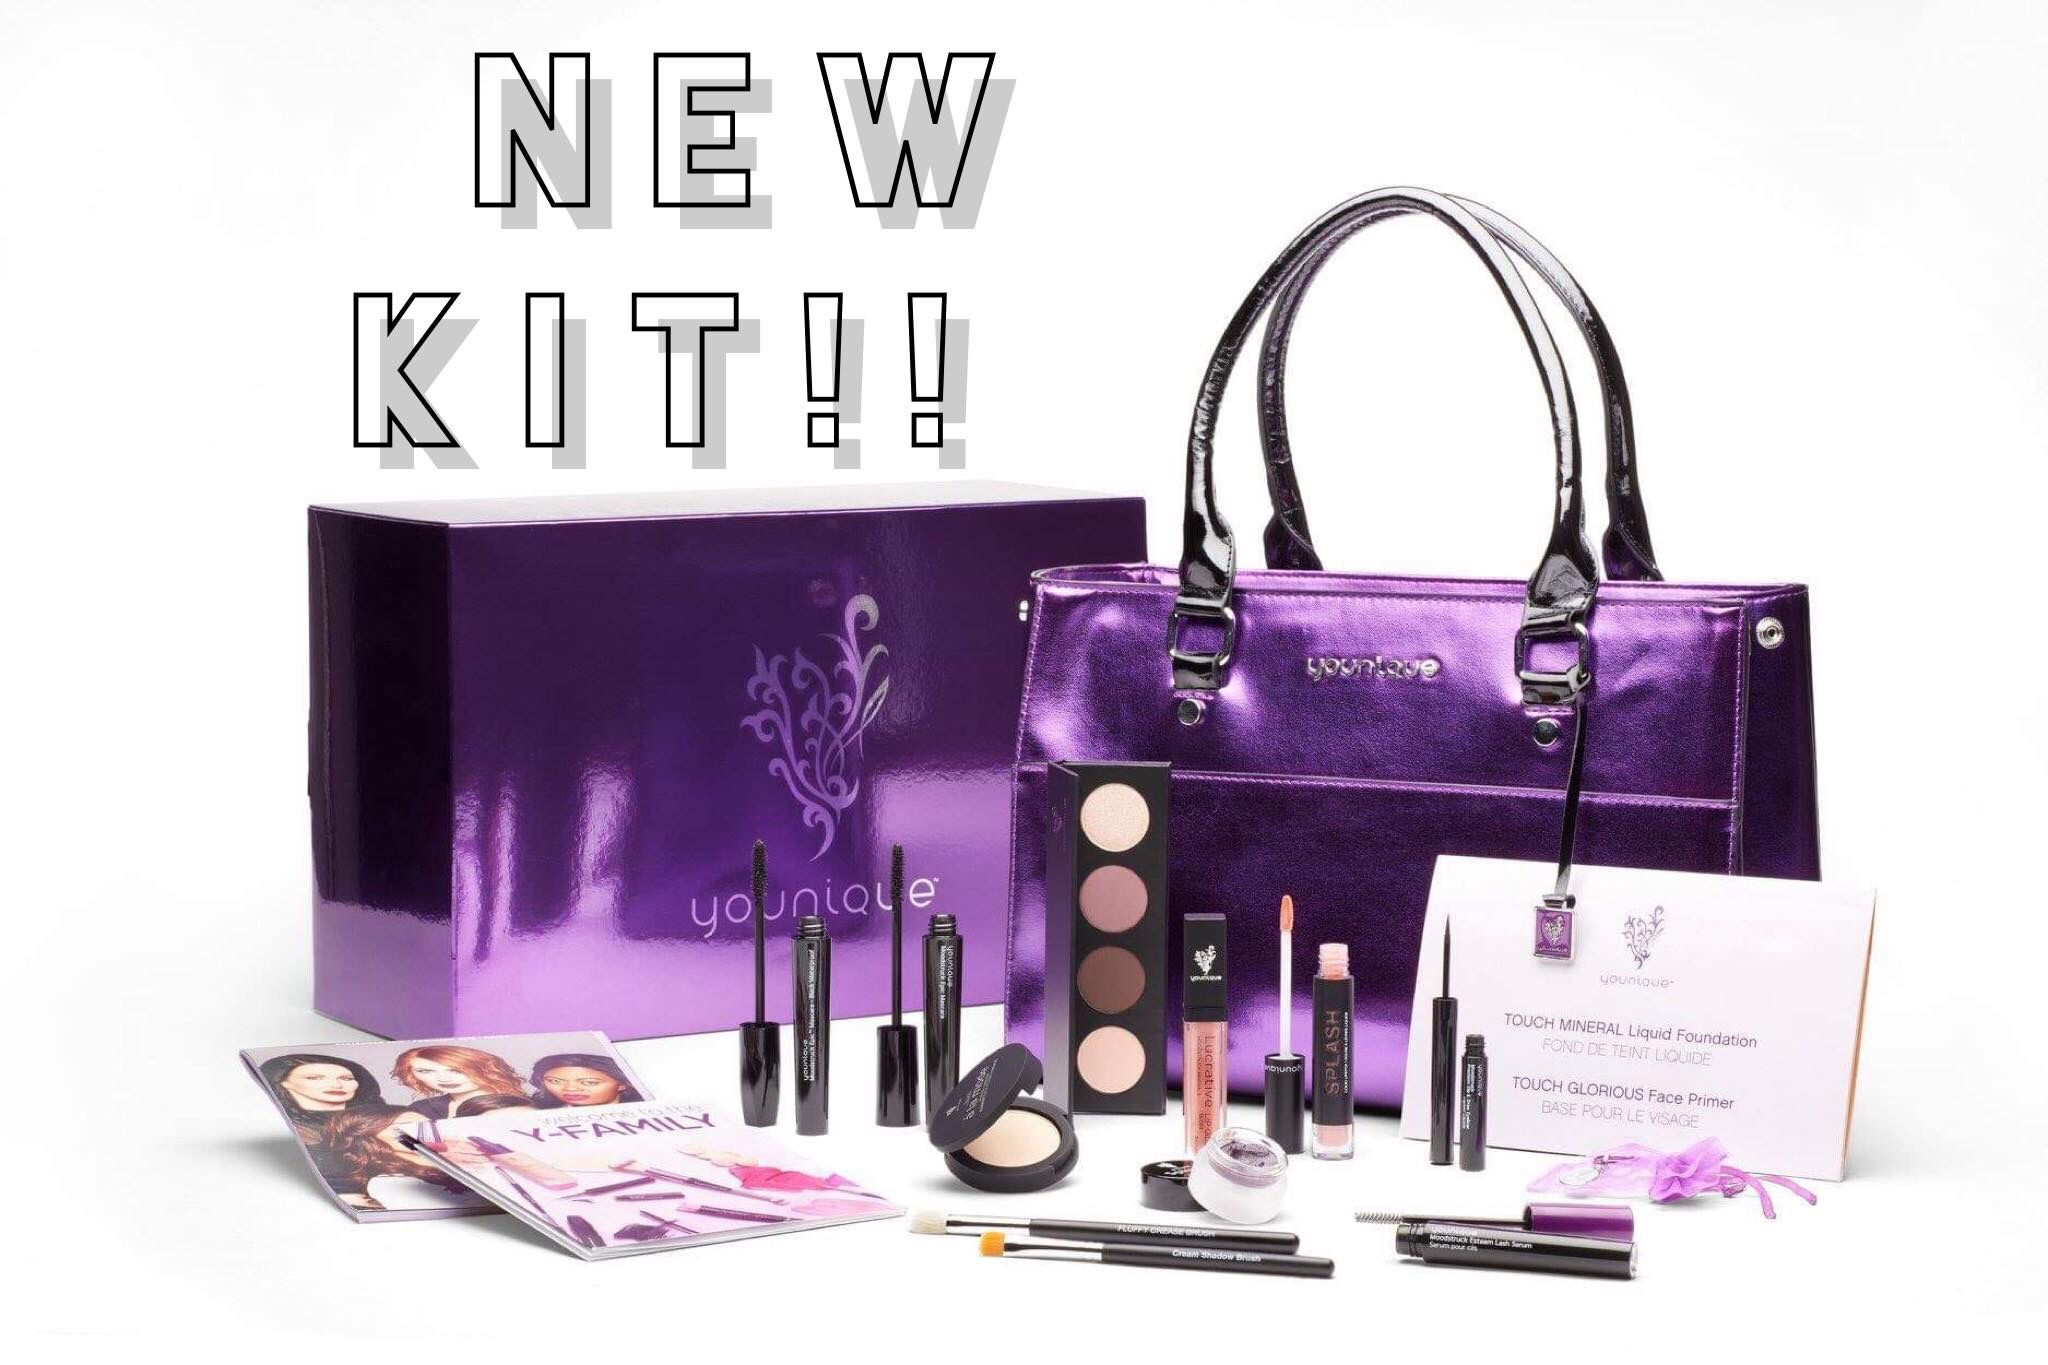 The new January 2019 presenter kit, 99 younique makeup